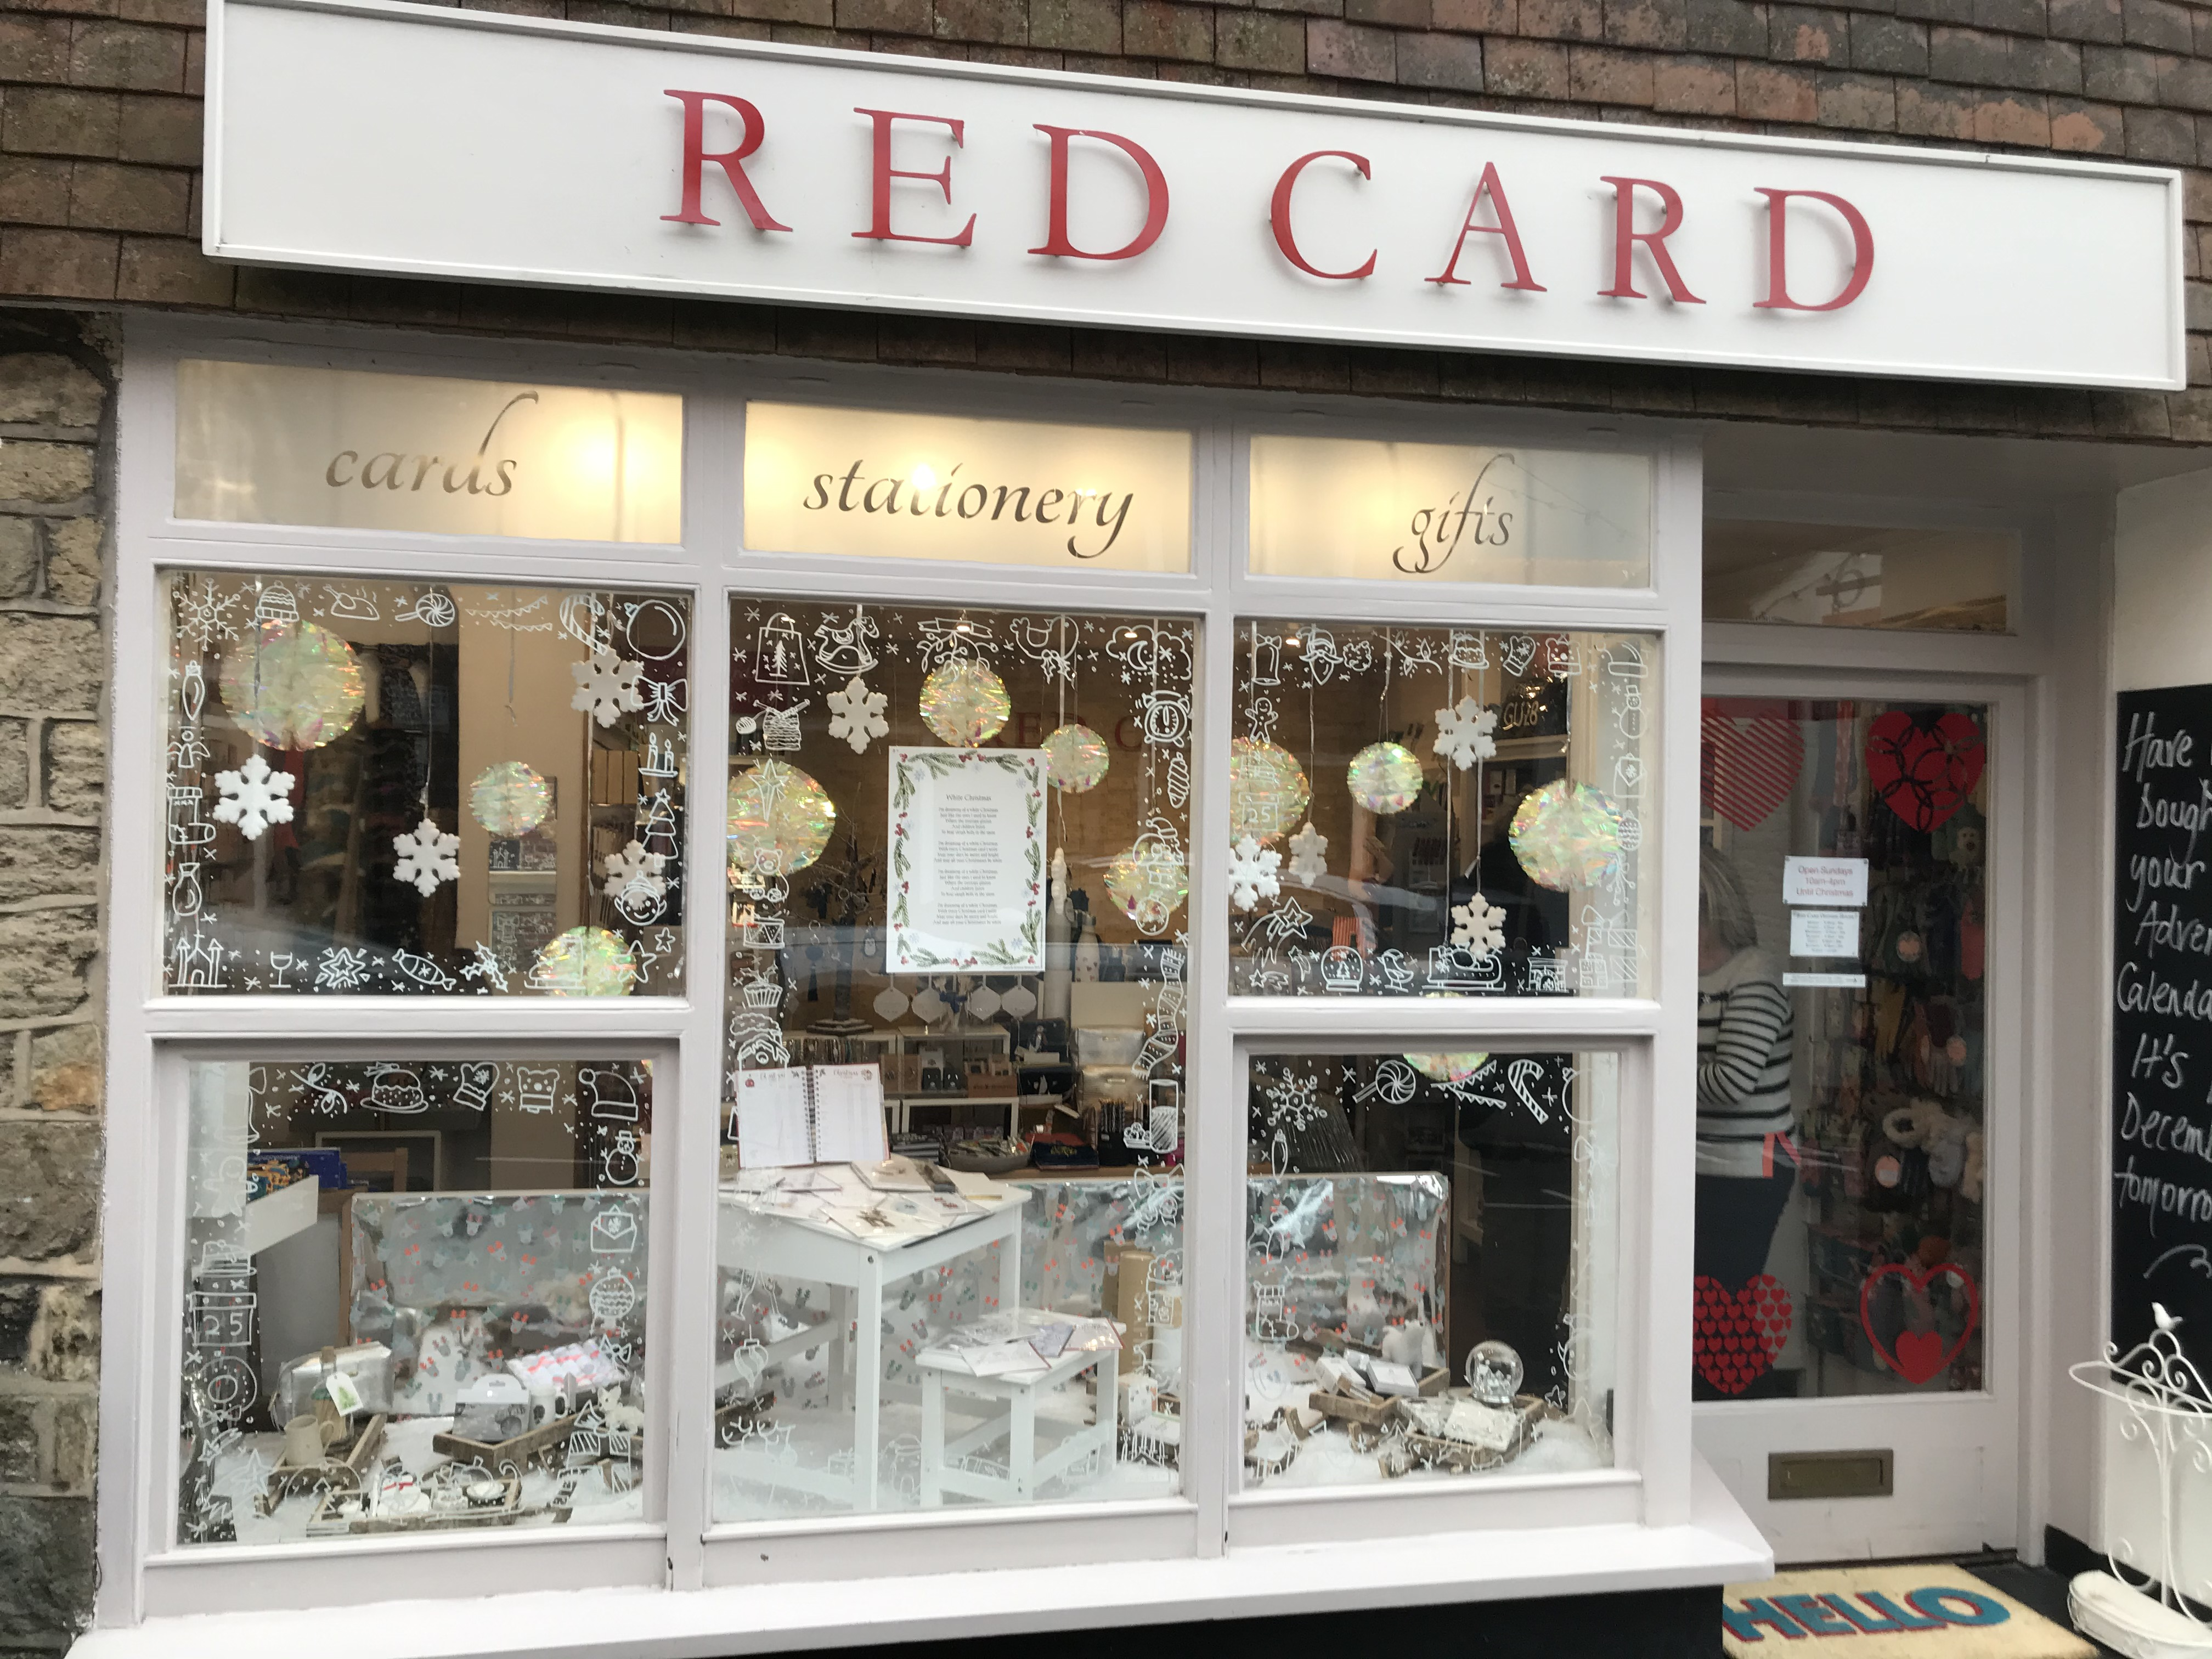 Above: The Red Card festive shopfront, which was on a White Christmas theme.